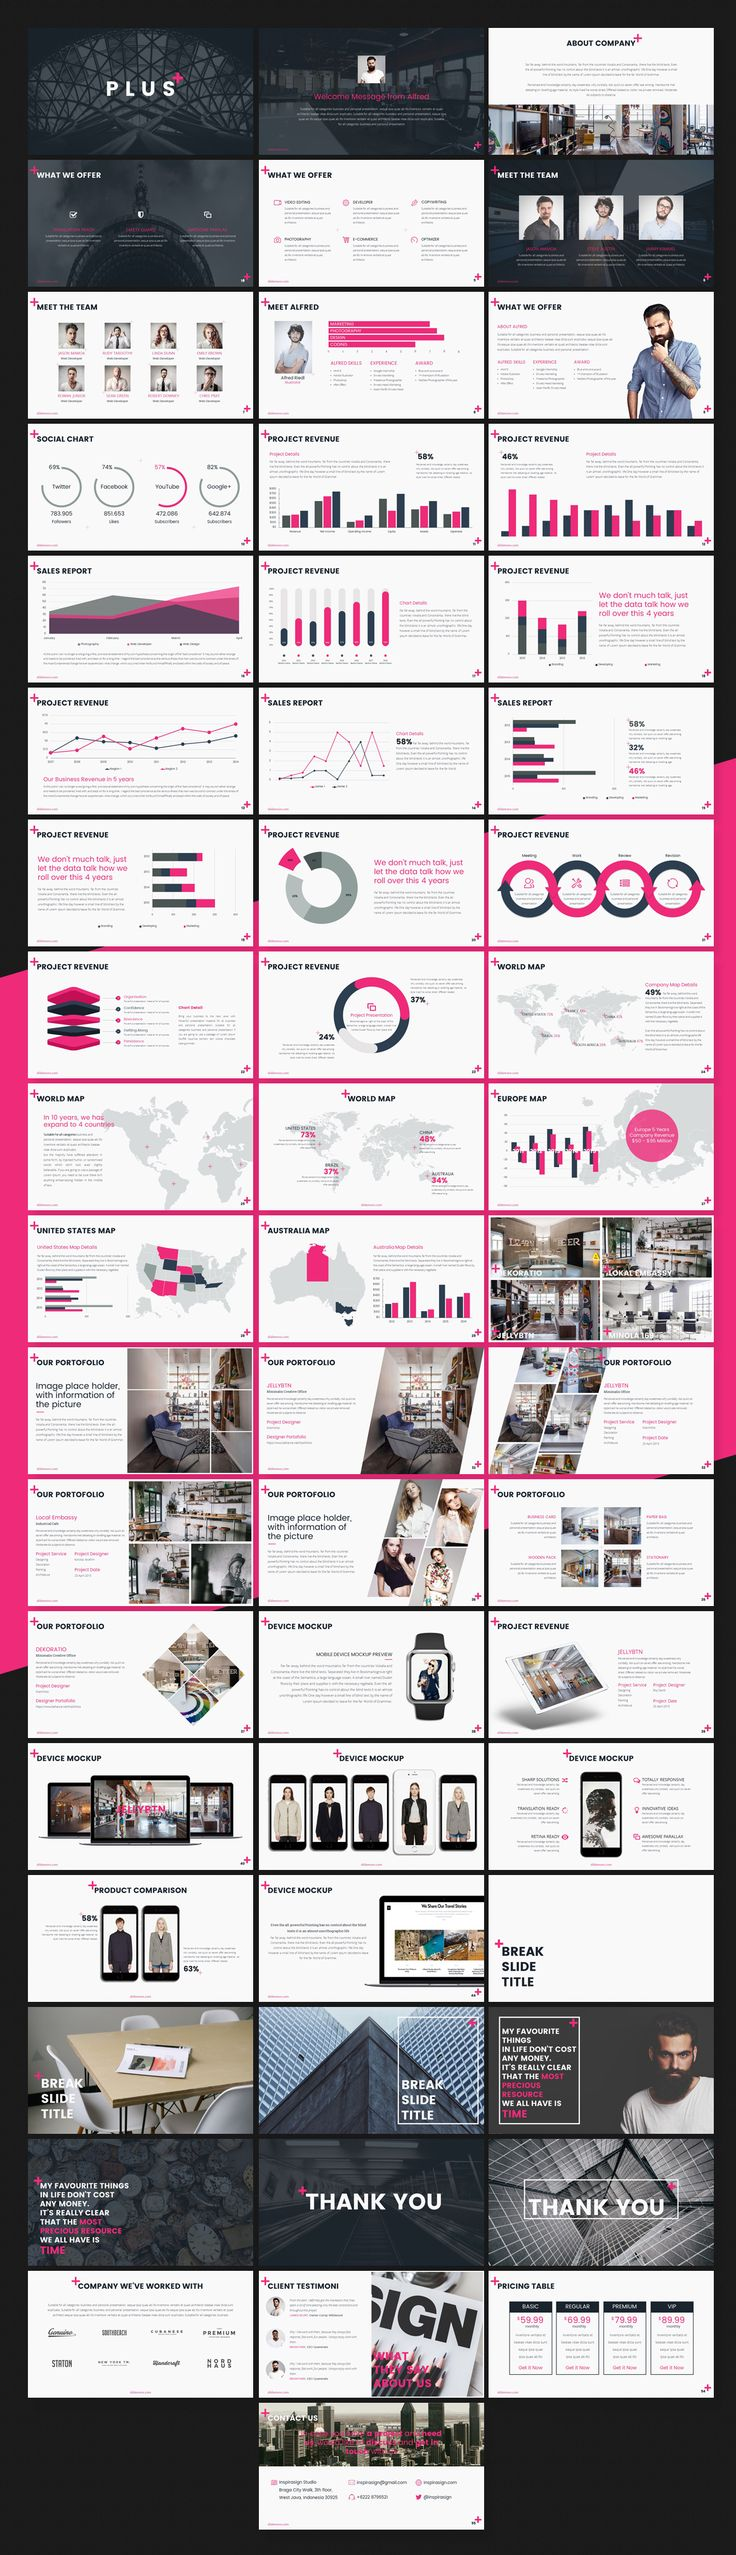 PLUS Powerpoint Template by SlideMore on @creativemarket